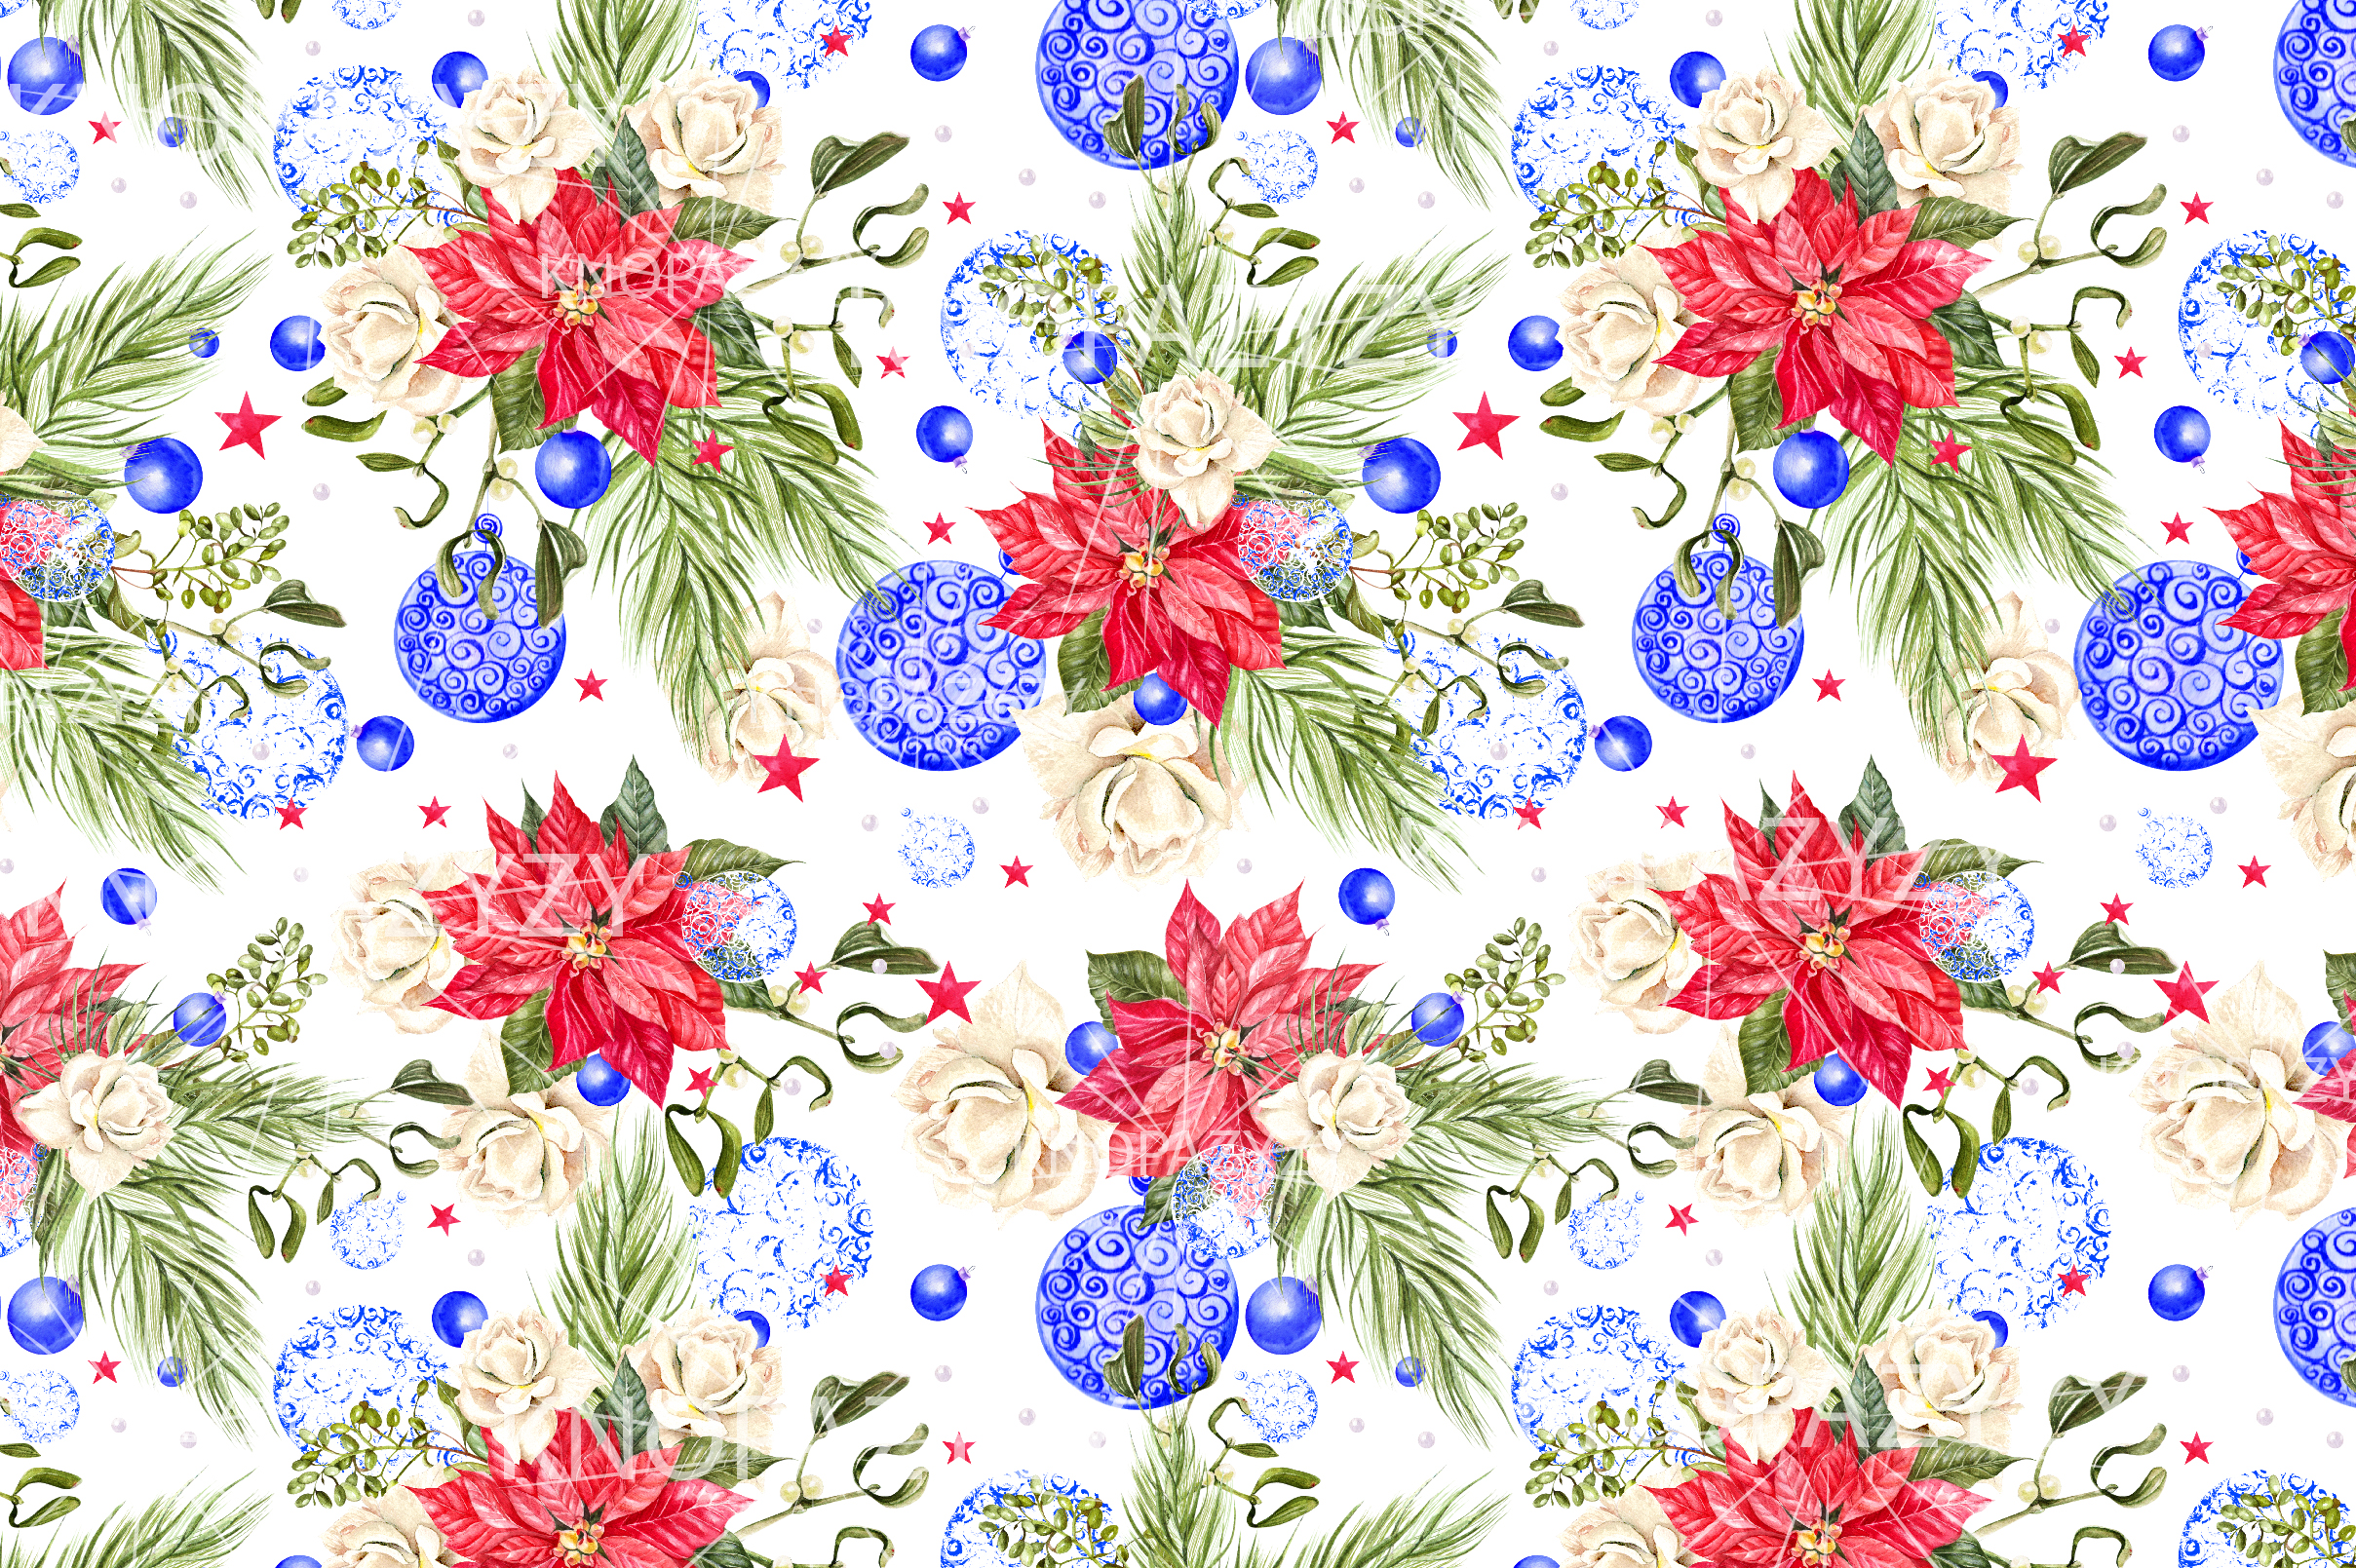 Hand Drawn Watercolor Christmas 13 Patterns example image 11